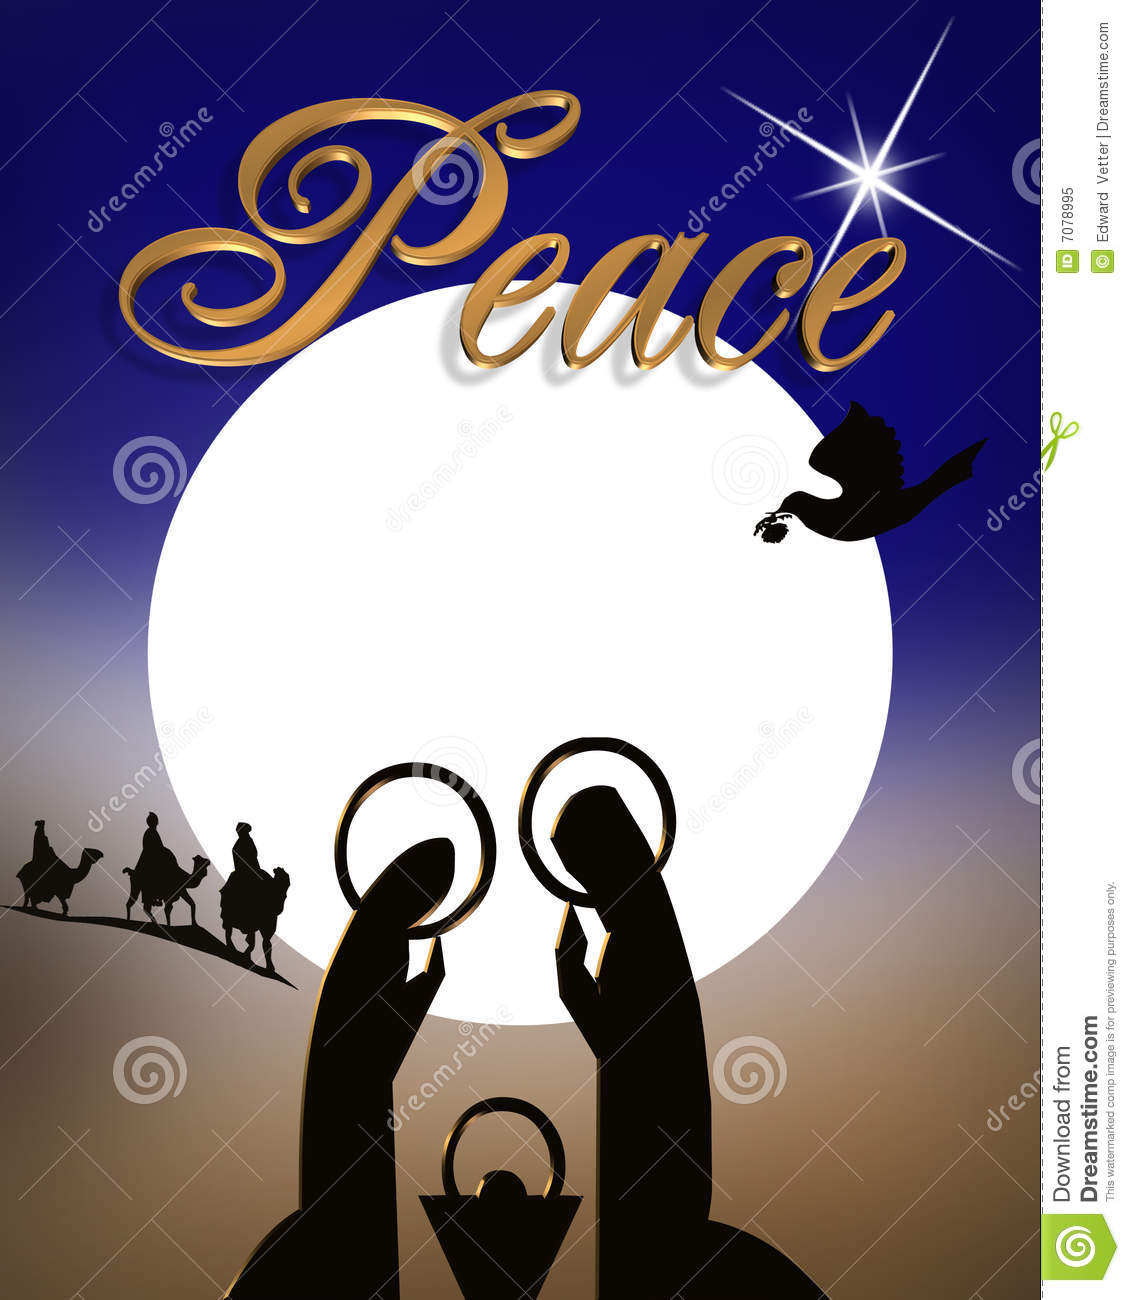 Card Christmas Religious Clipart - Clipart Kid